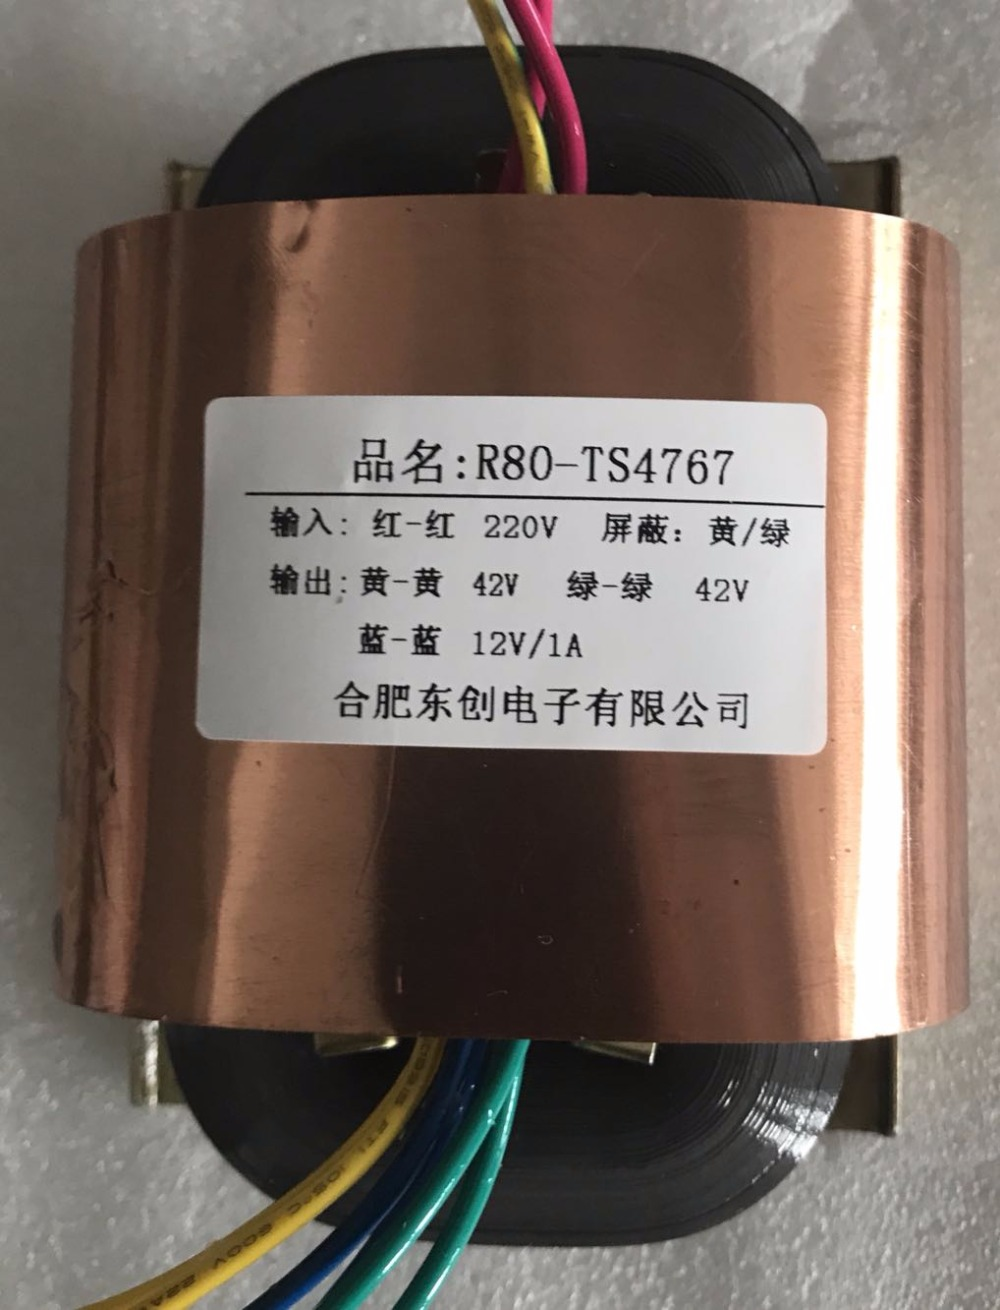 42V 1A 42V 1A 12V 1A R Core Transformer 100VA R80 custom transformer 220V input with copper shield output for Power amplifier жакет vassa